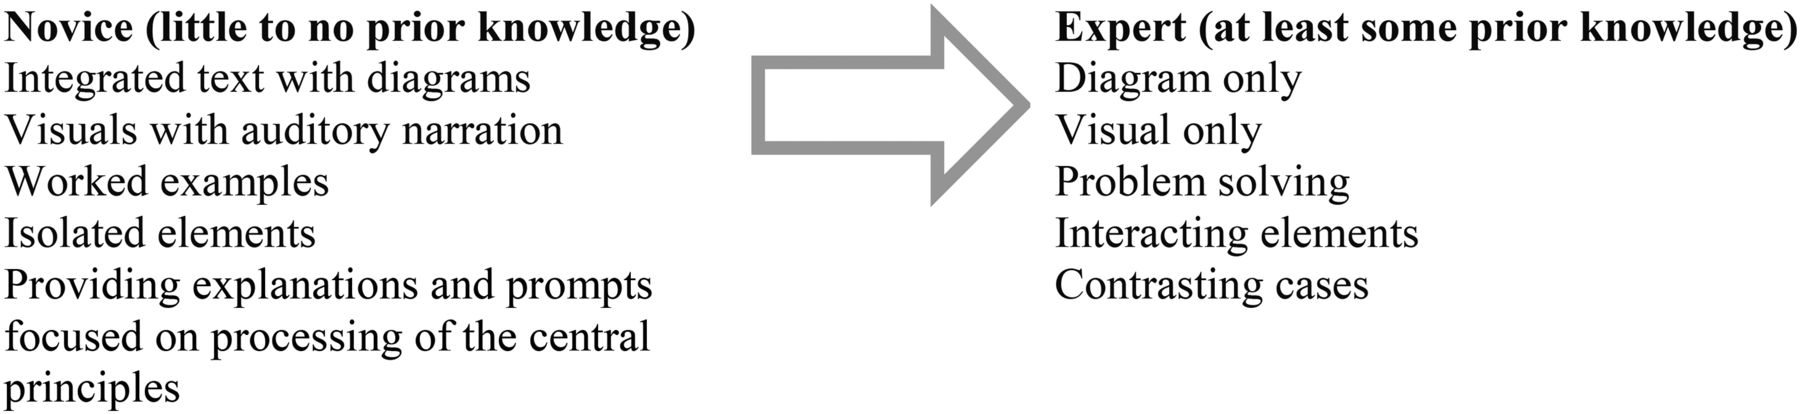 Moving From Novice To Expertise And Its Implications For Instruction American Journal Of Pharmaceutical Education